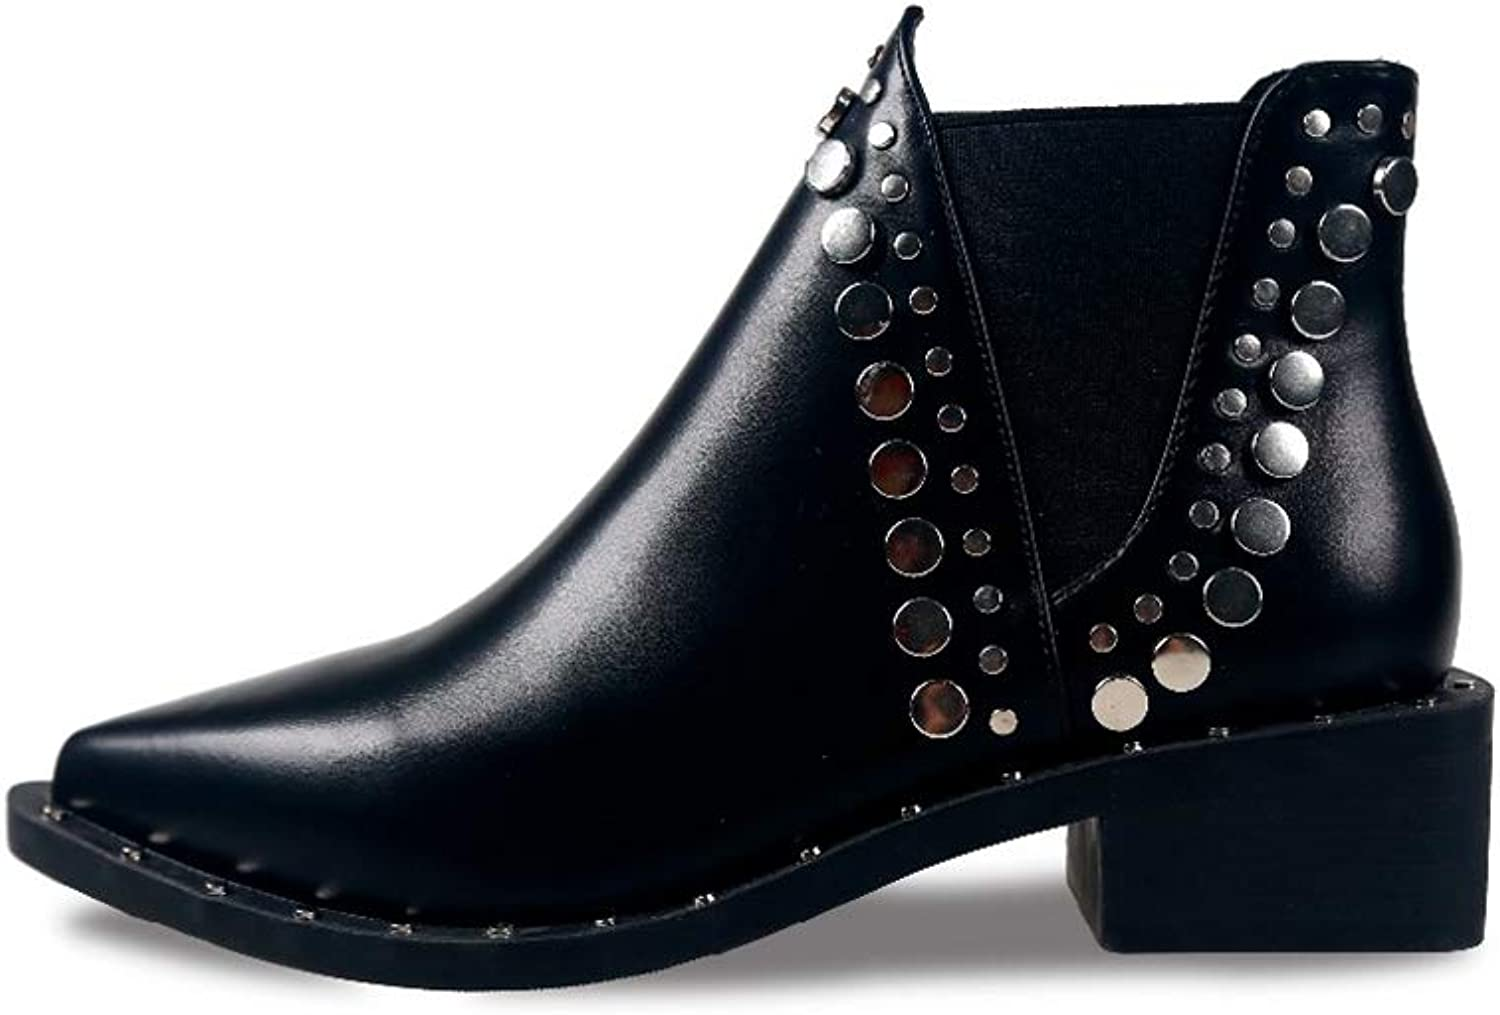 T-JULY Women's Ankle Boots Cool Rivet shoes Thick Heels Comfort Pointed Toe Botas Cool Punk Style Black Short Boots